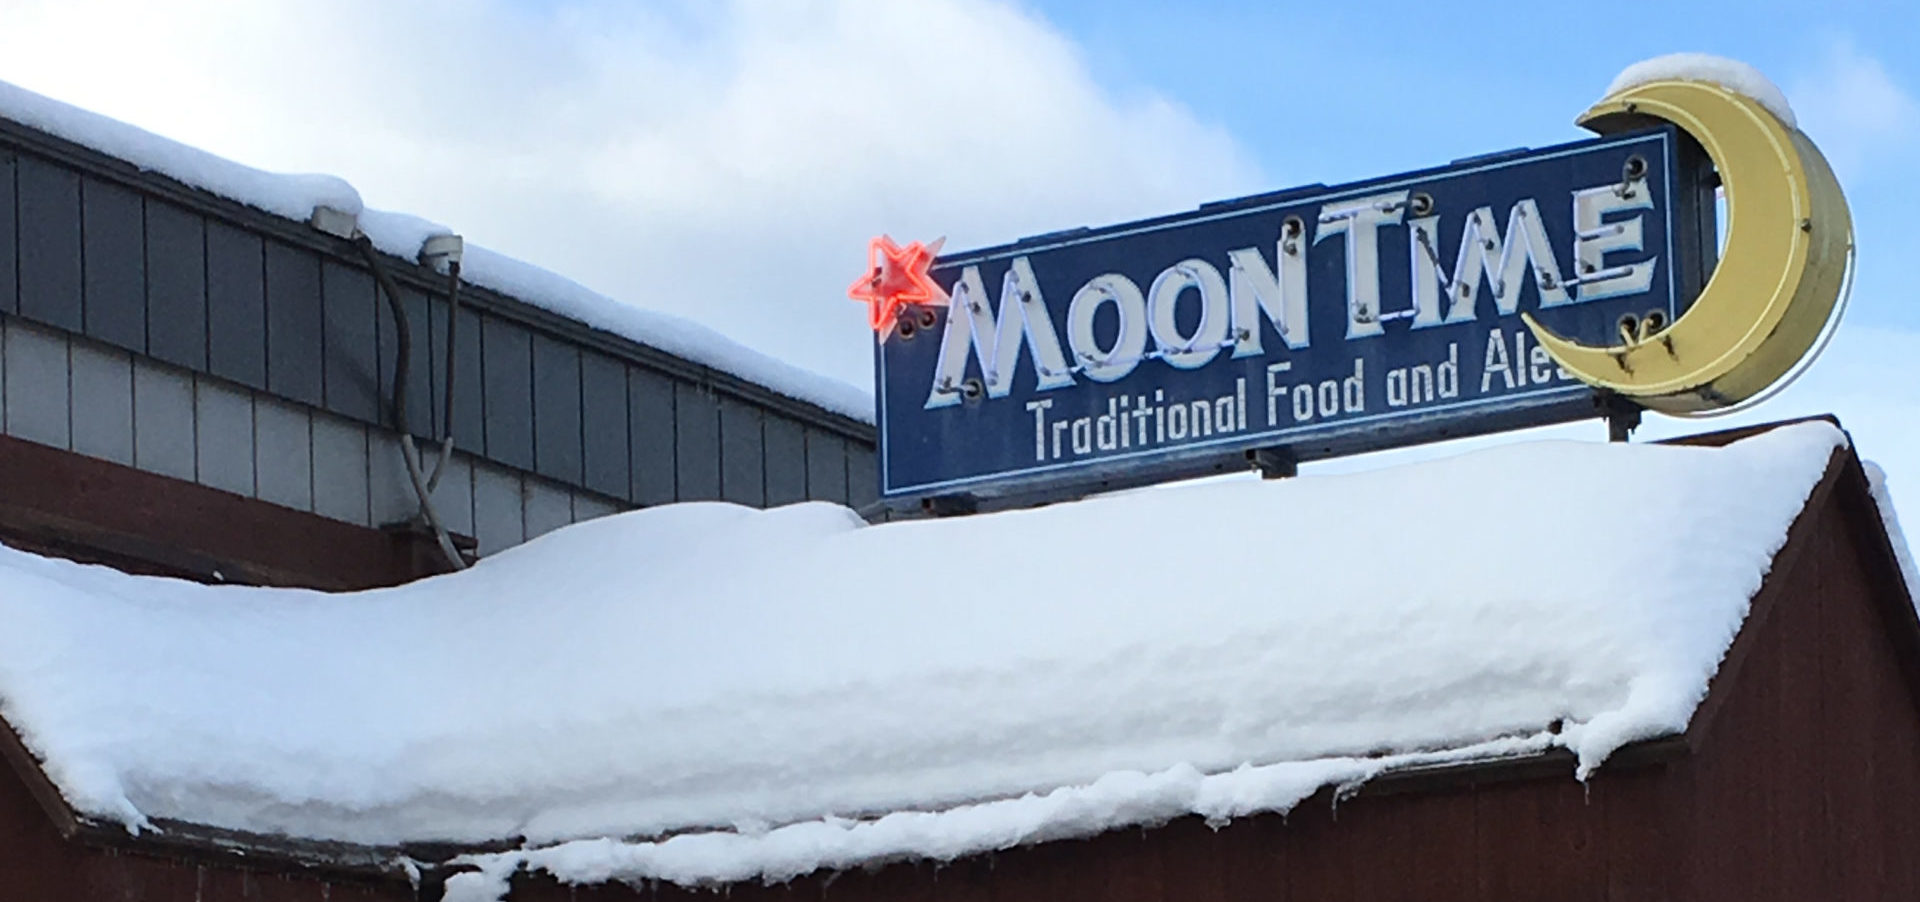 Moon Time neon sign.